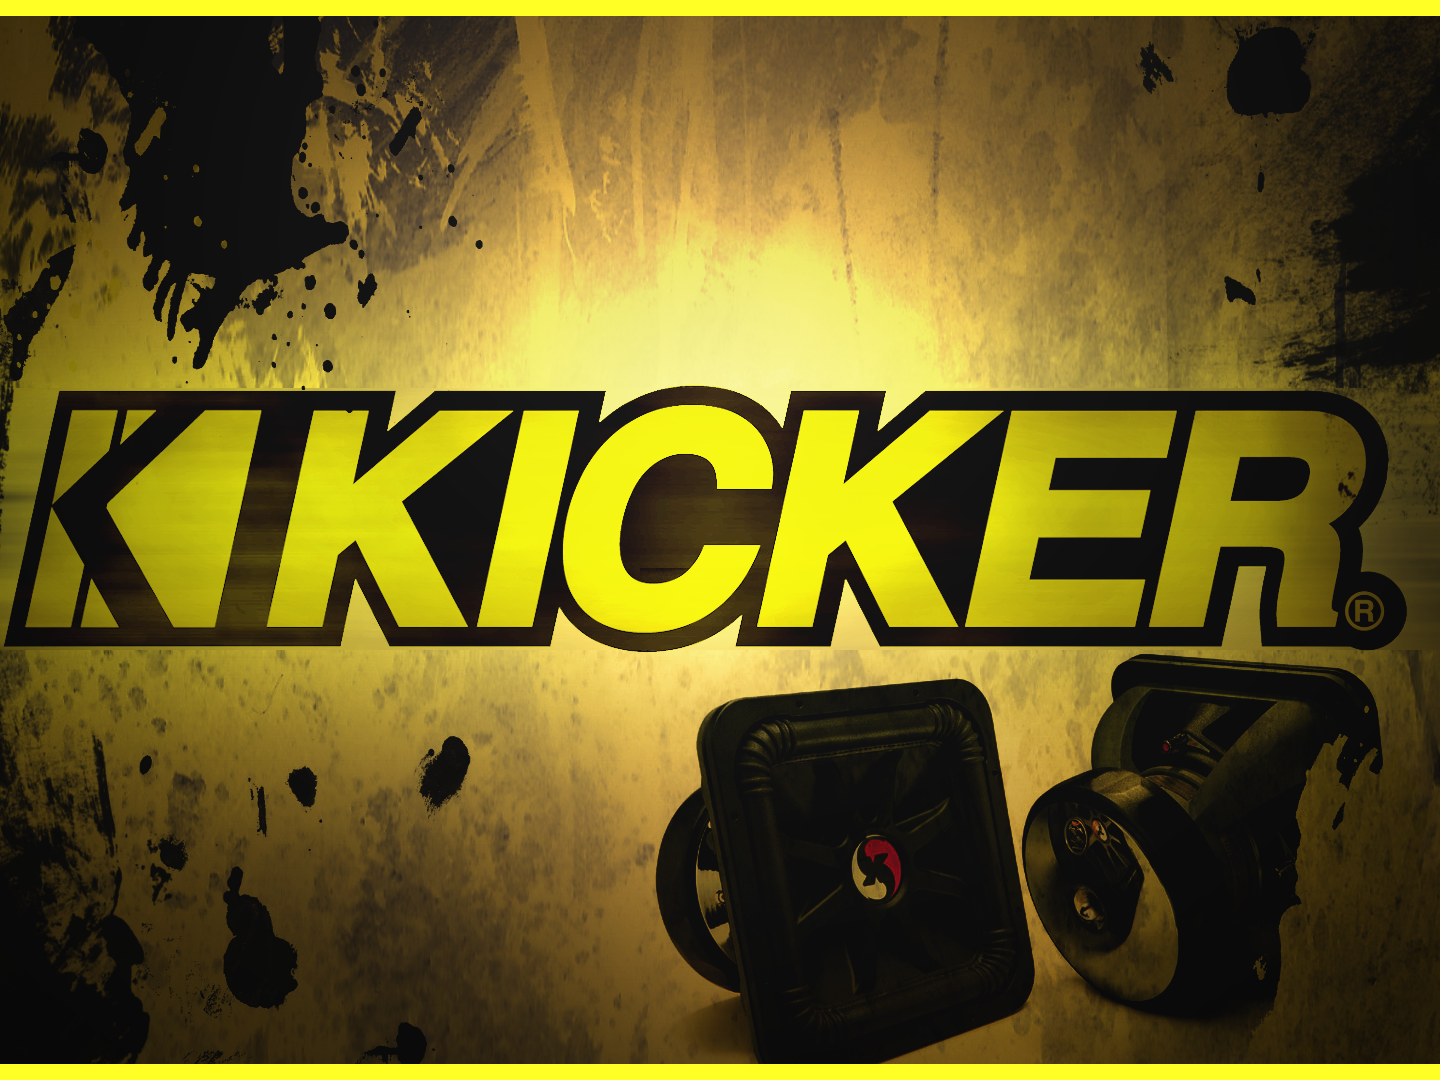 comsitefiles1349725025 kicker car audio wallpaper backgroundpng 1440x1080